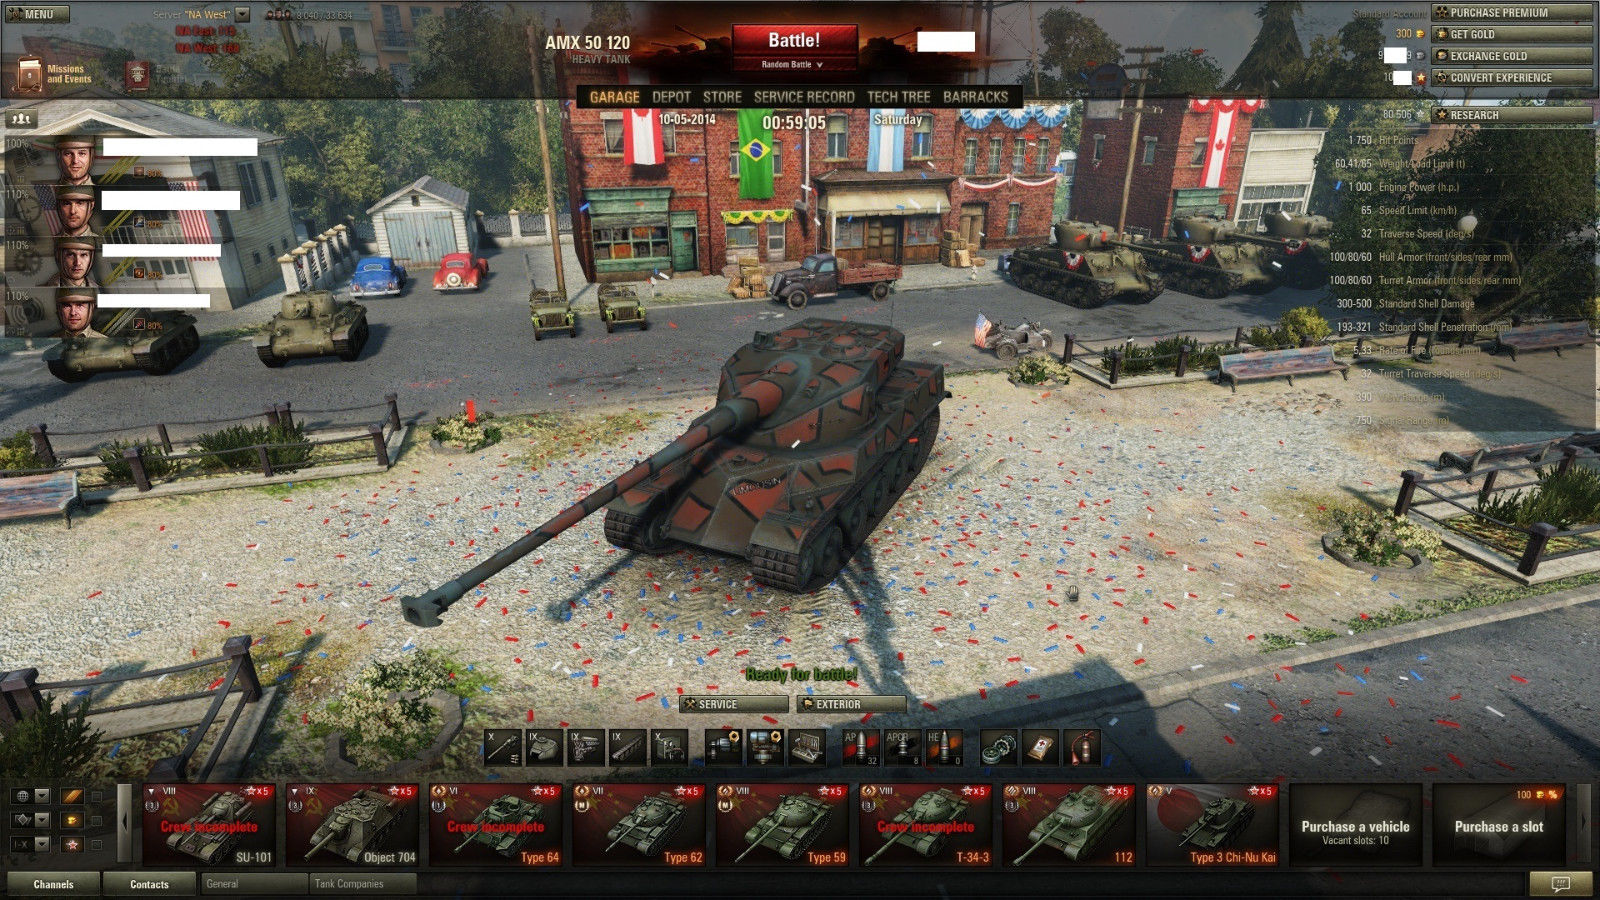 Sold - World of Tanks NA account - Type 59 and Type 62 - 27